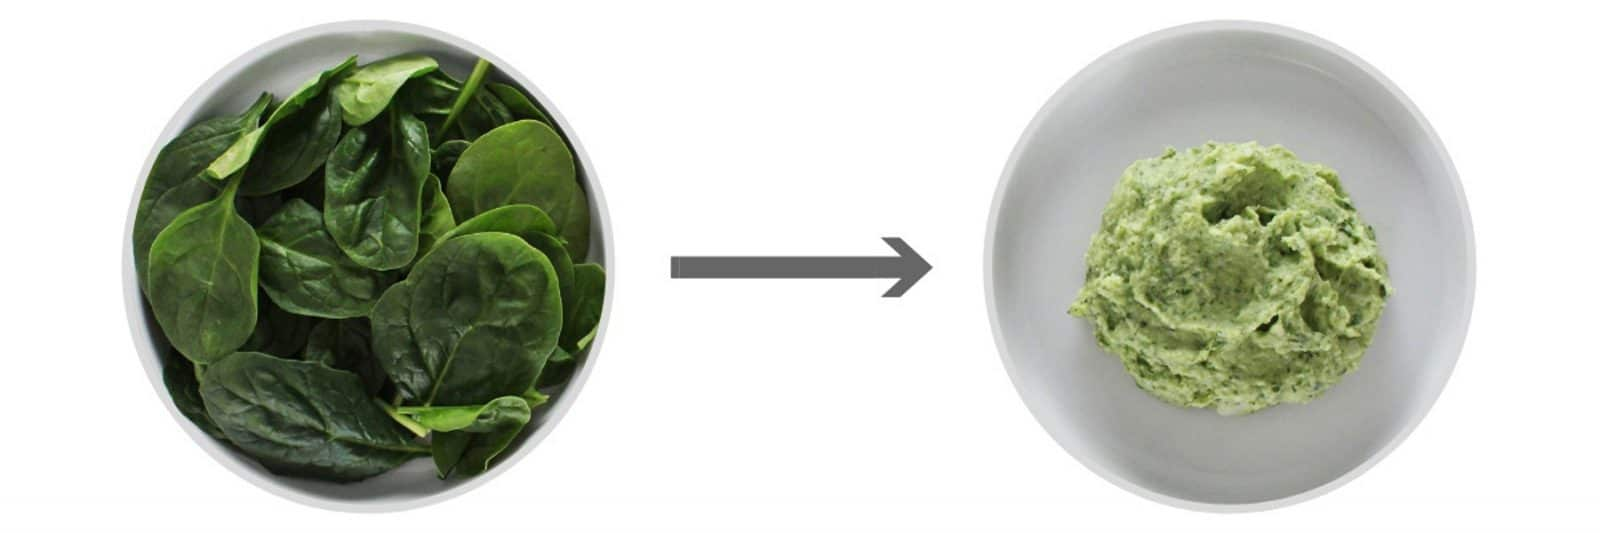 Spinach on round white plate next to spinach mashed potatoes on round white plate.